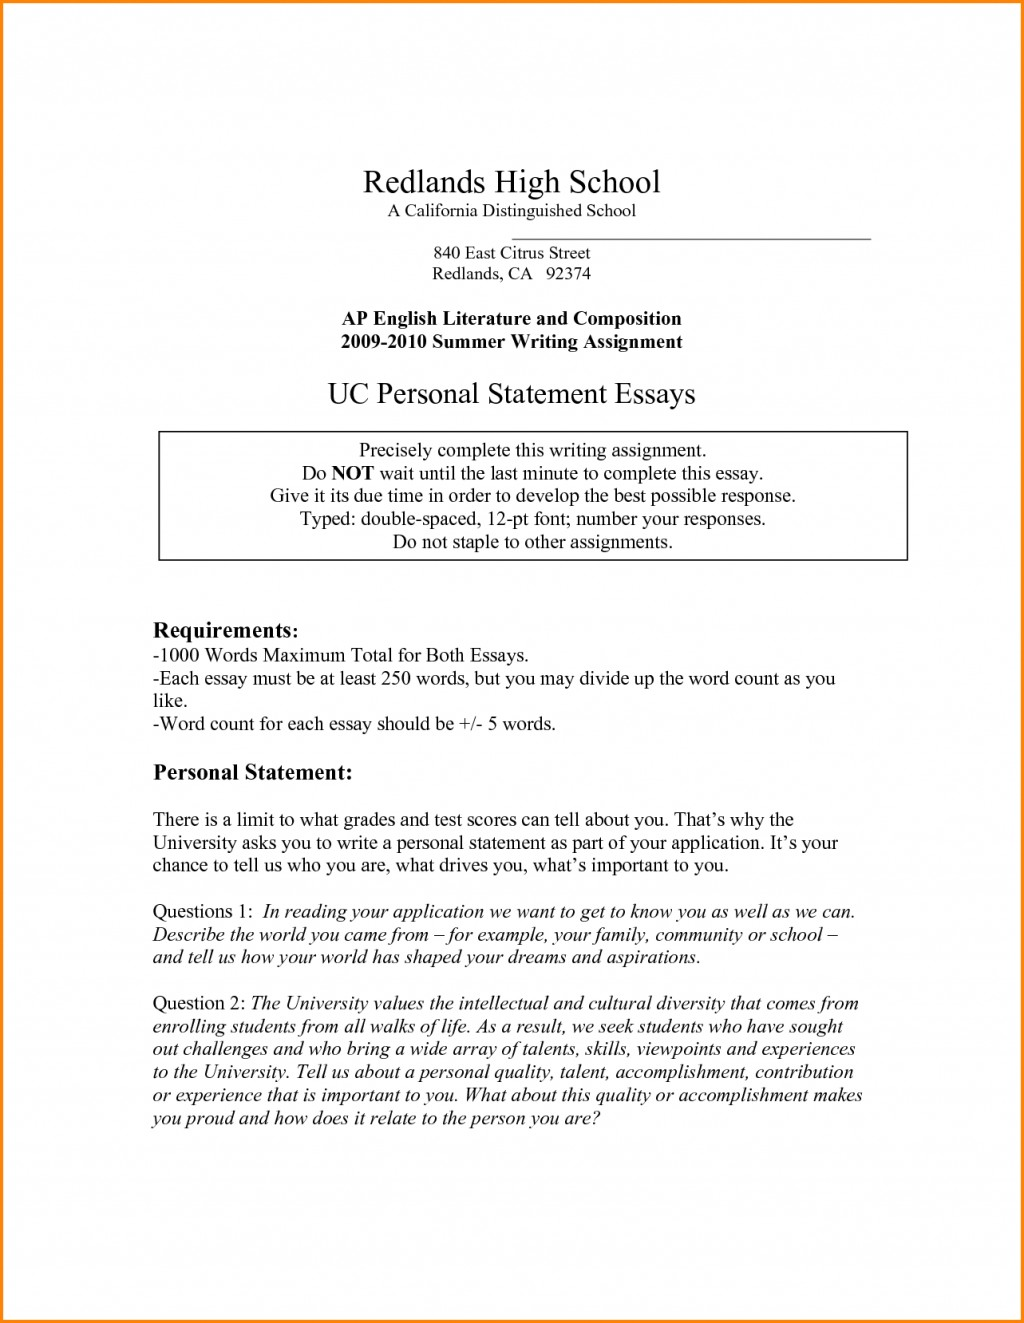 015 Uc Personal Statement Examples Essay Example Sample Imposing Essays Prompt 1 6 3 Large